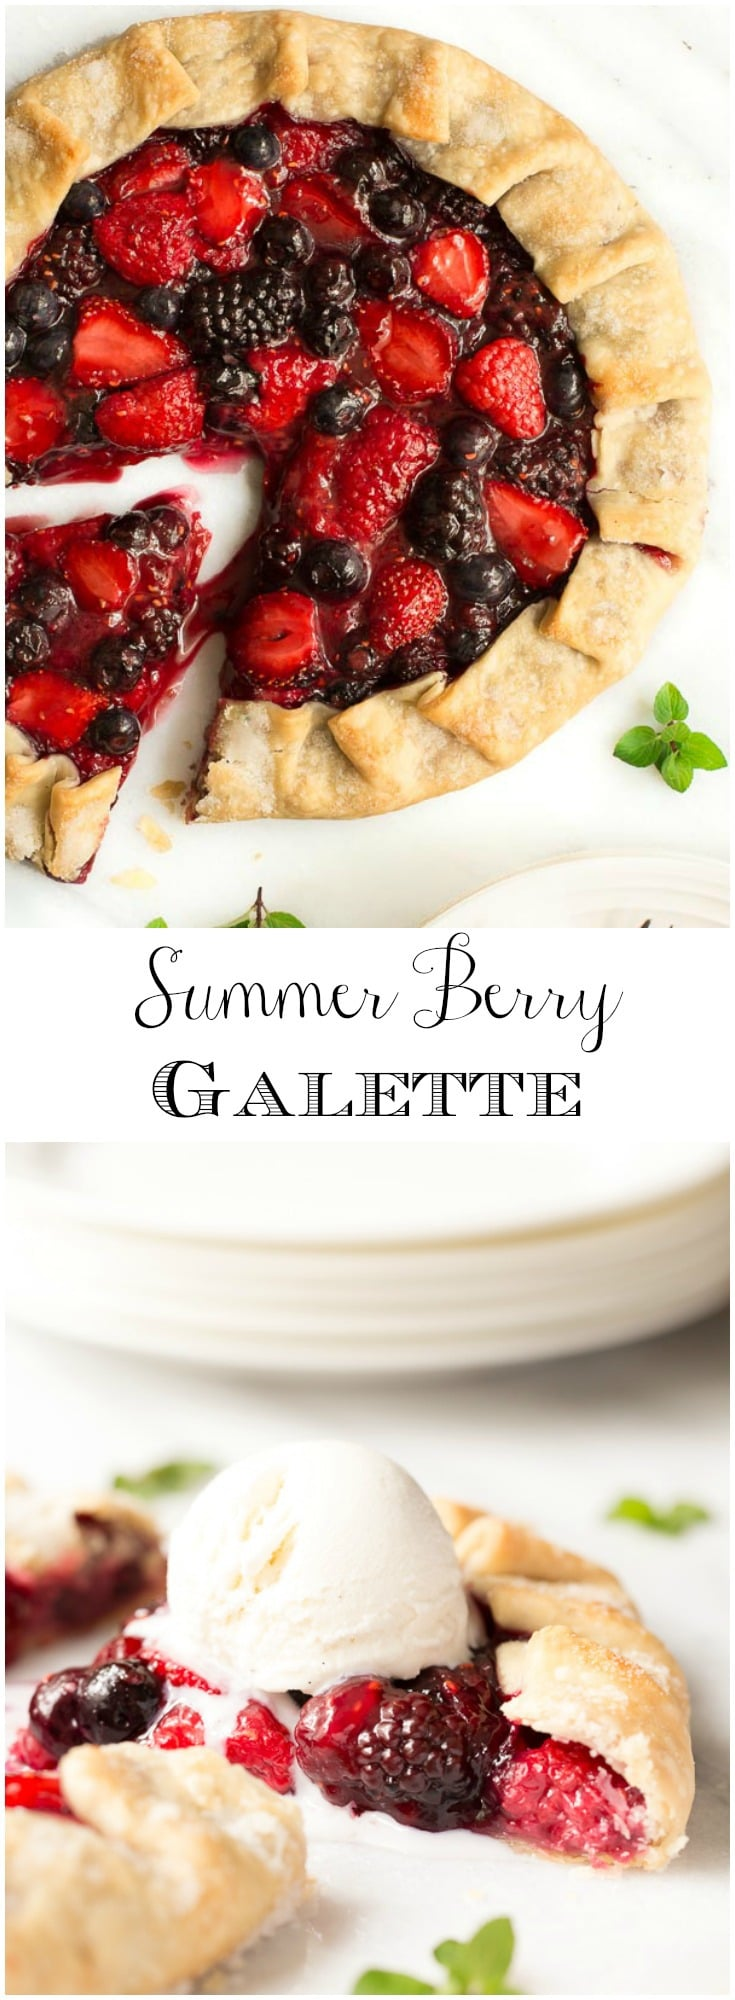 A quick, easy and super delicious summer dessert!